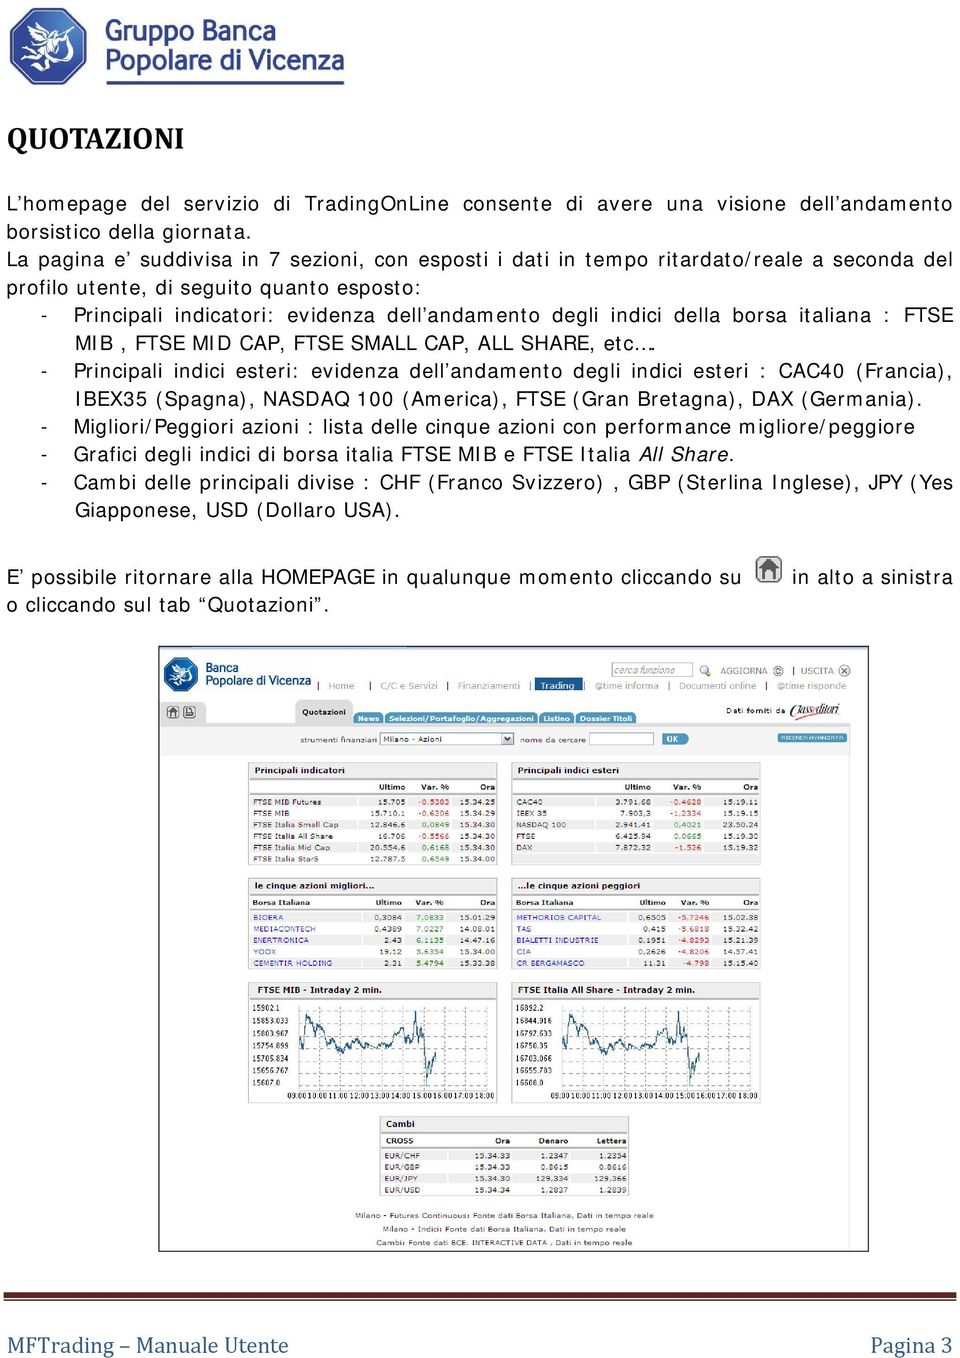 della borsa italiana : FTSE MIB, FTSE MID CAP, FTSE SMALL CAP, ALL SHARE, etc.